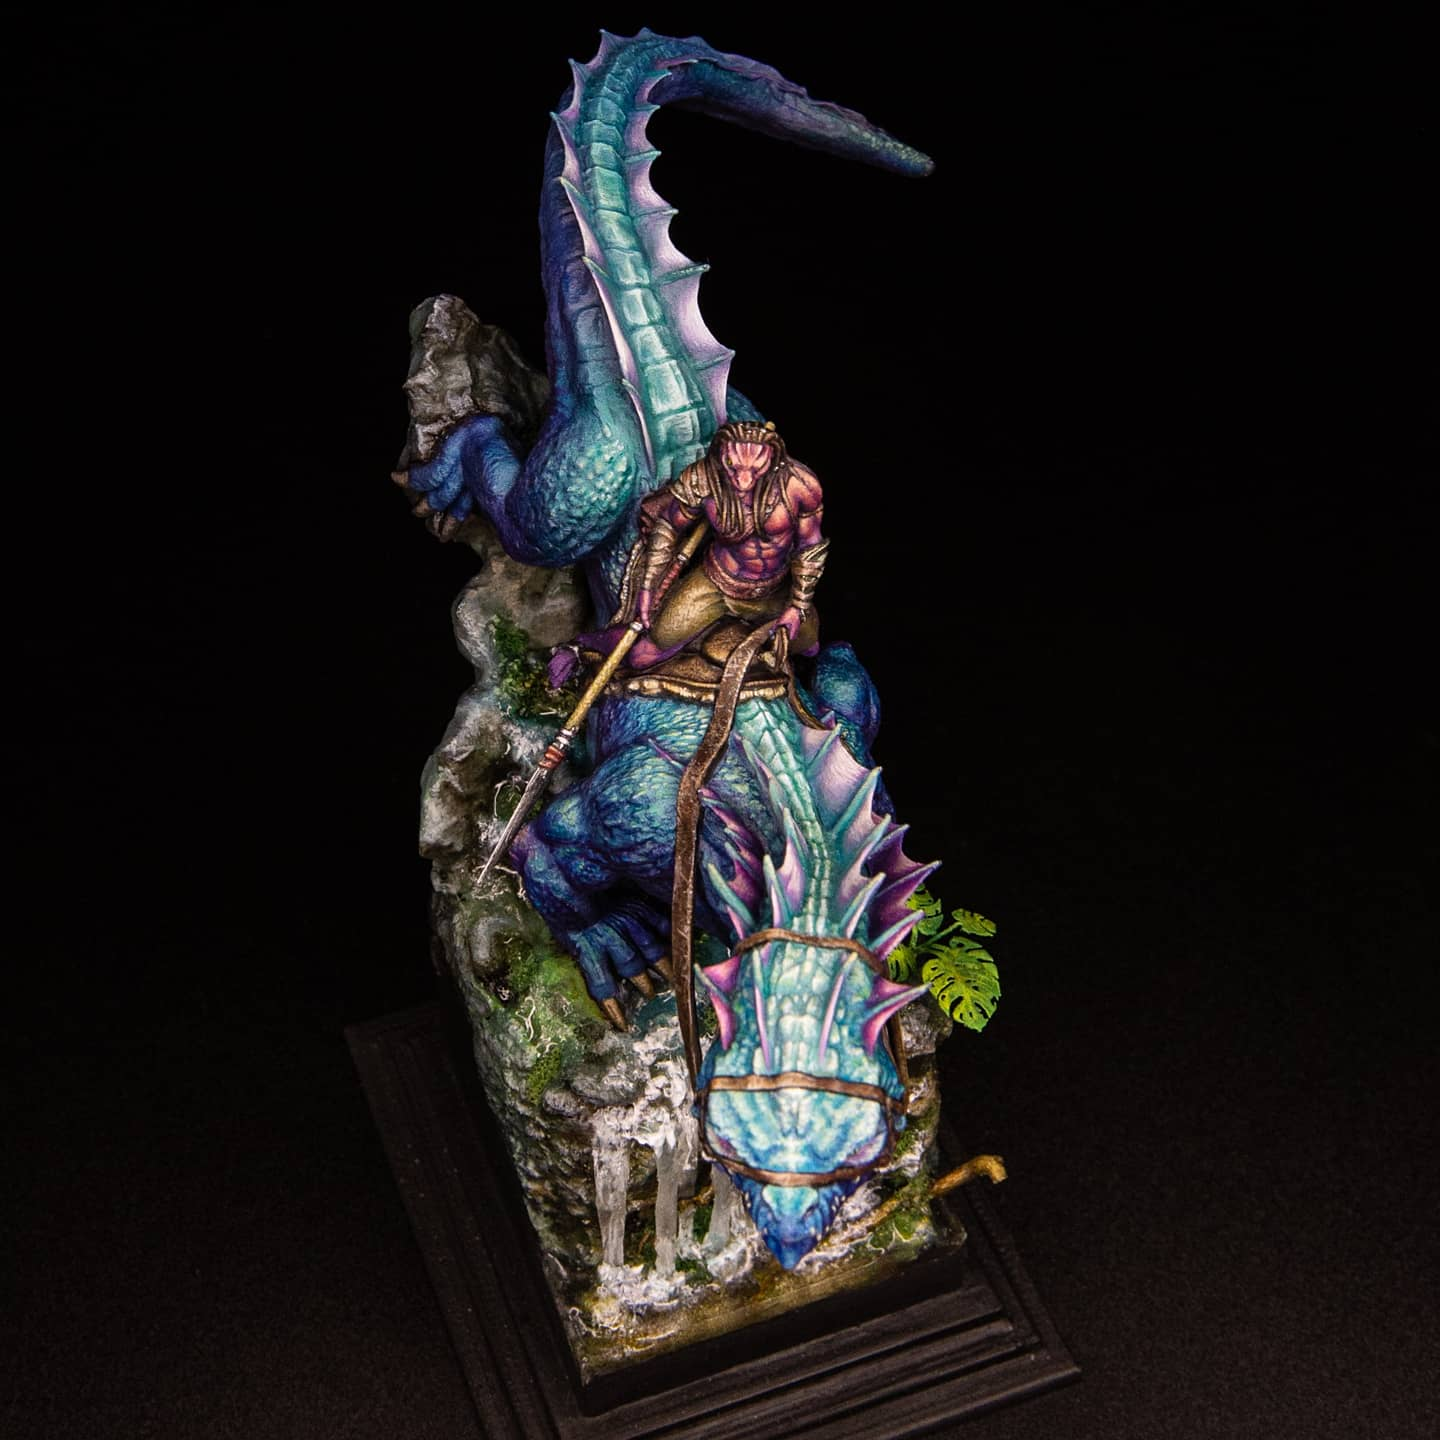 GIANT LIZARD MOUNTED sculpted by Lord of the Print